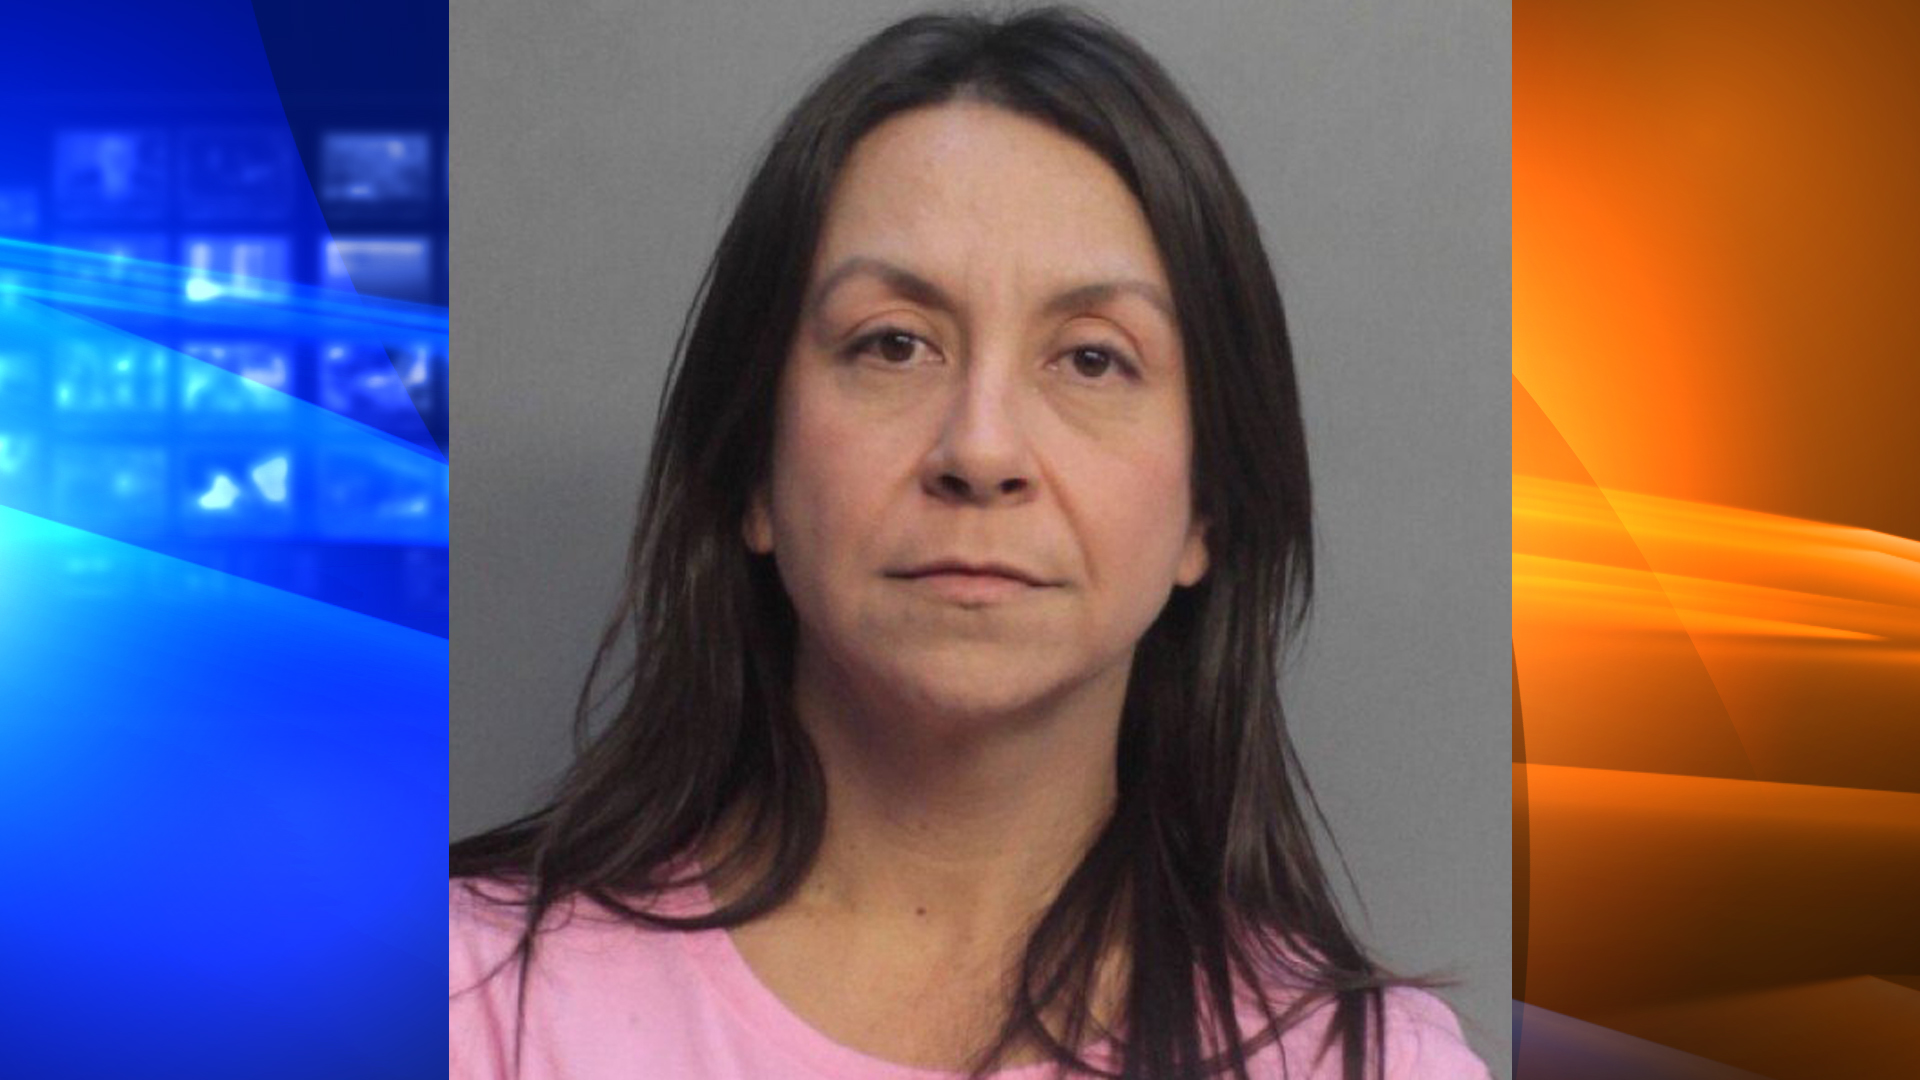 Andrea Jimenez is seen in an undated booking photo. (Credit: WFTS via CNN)